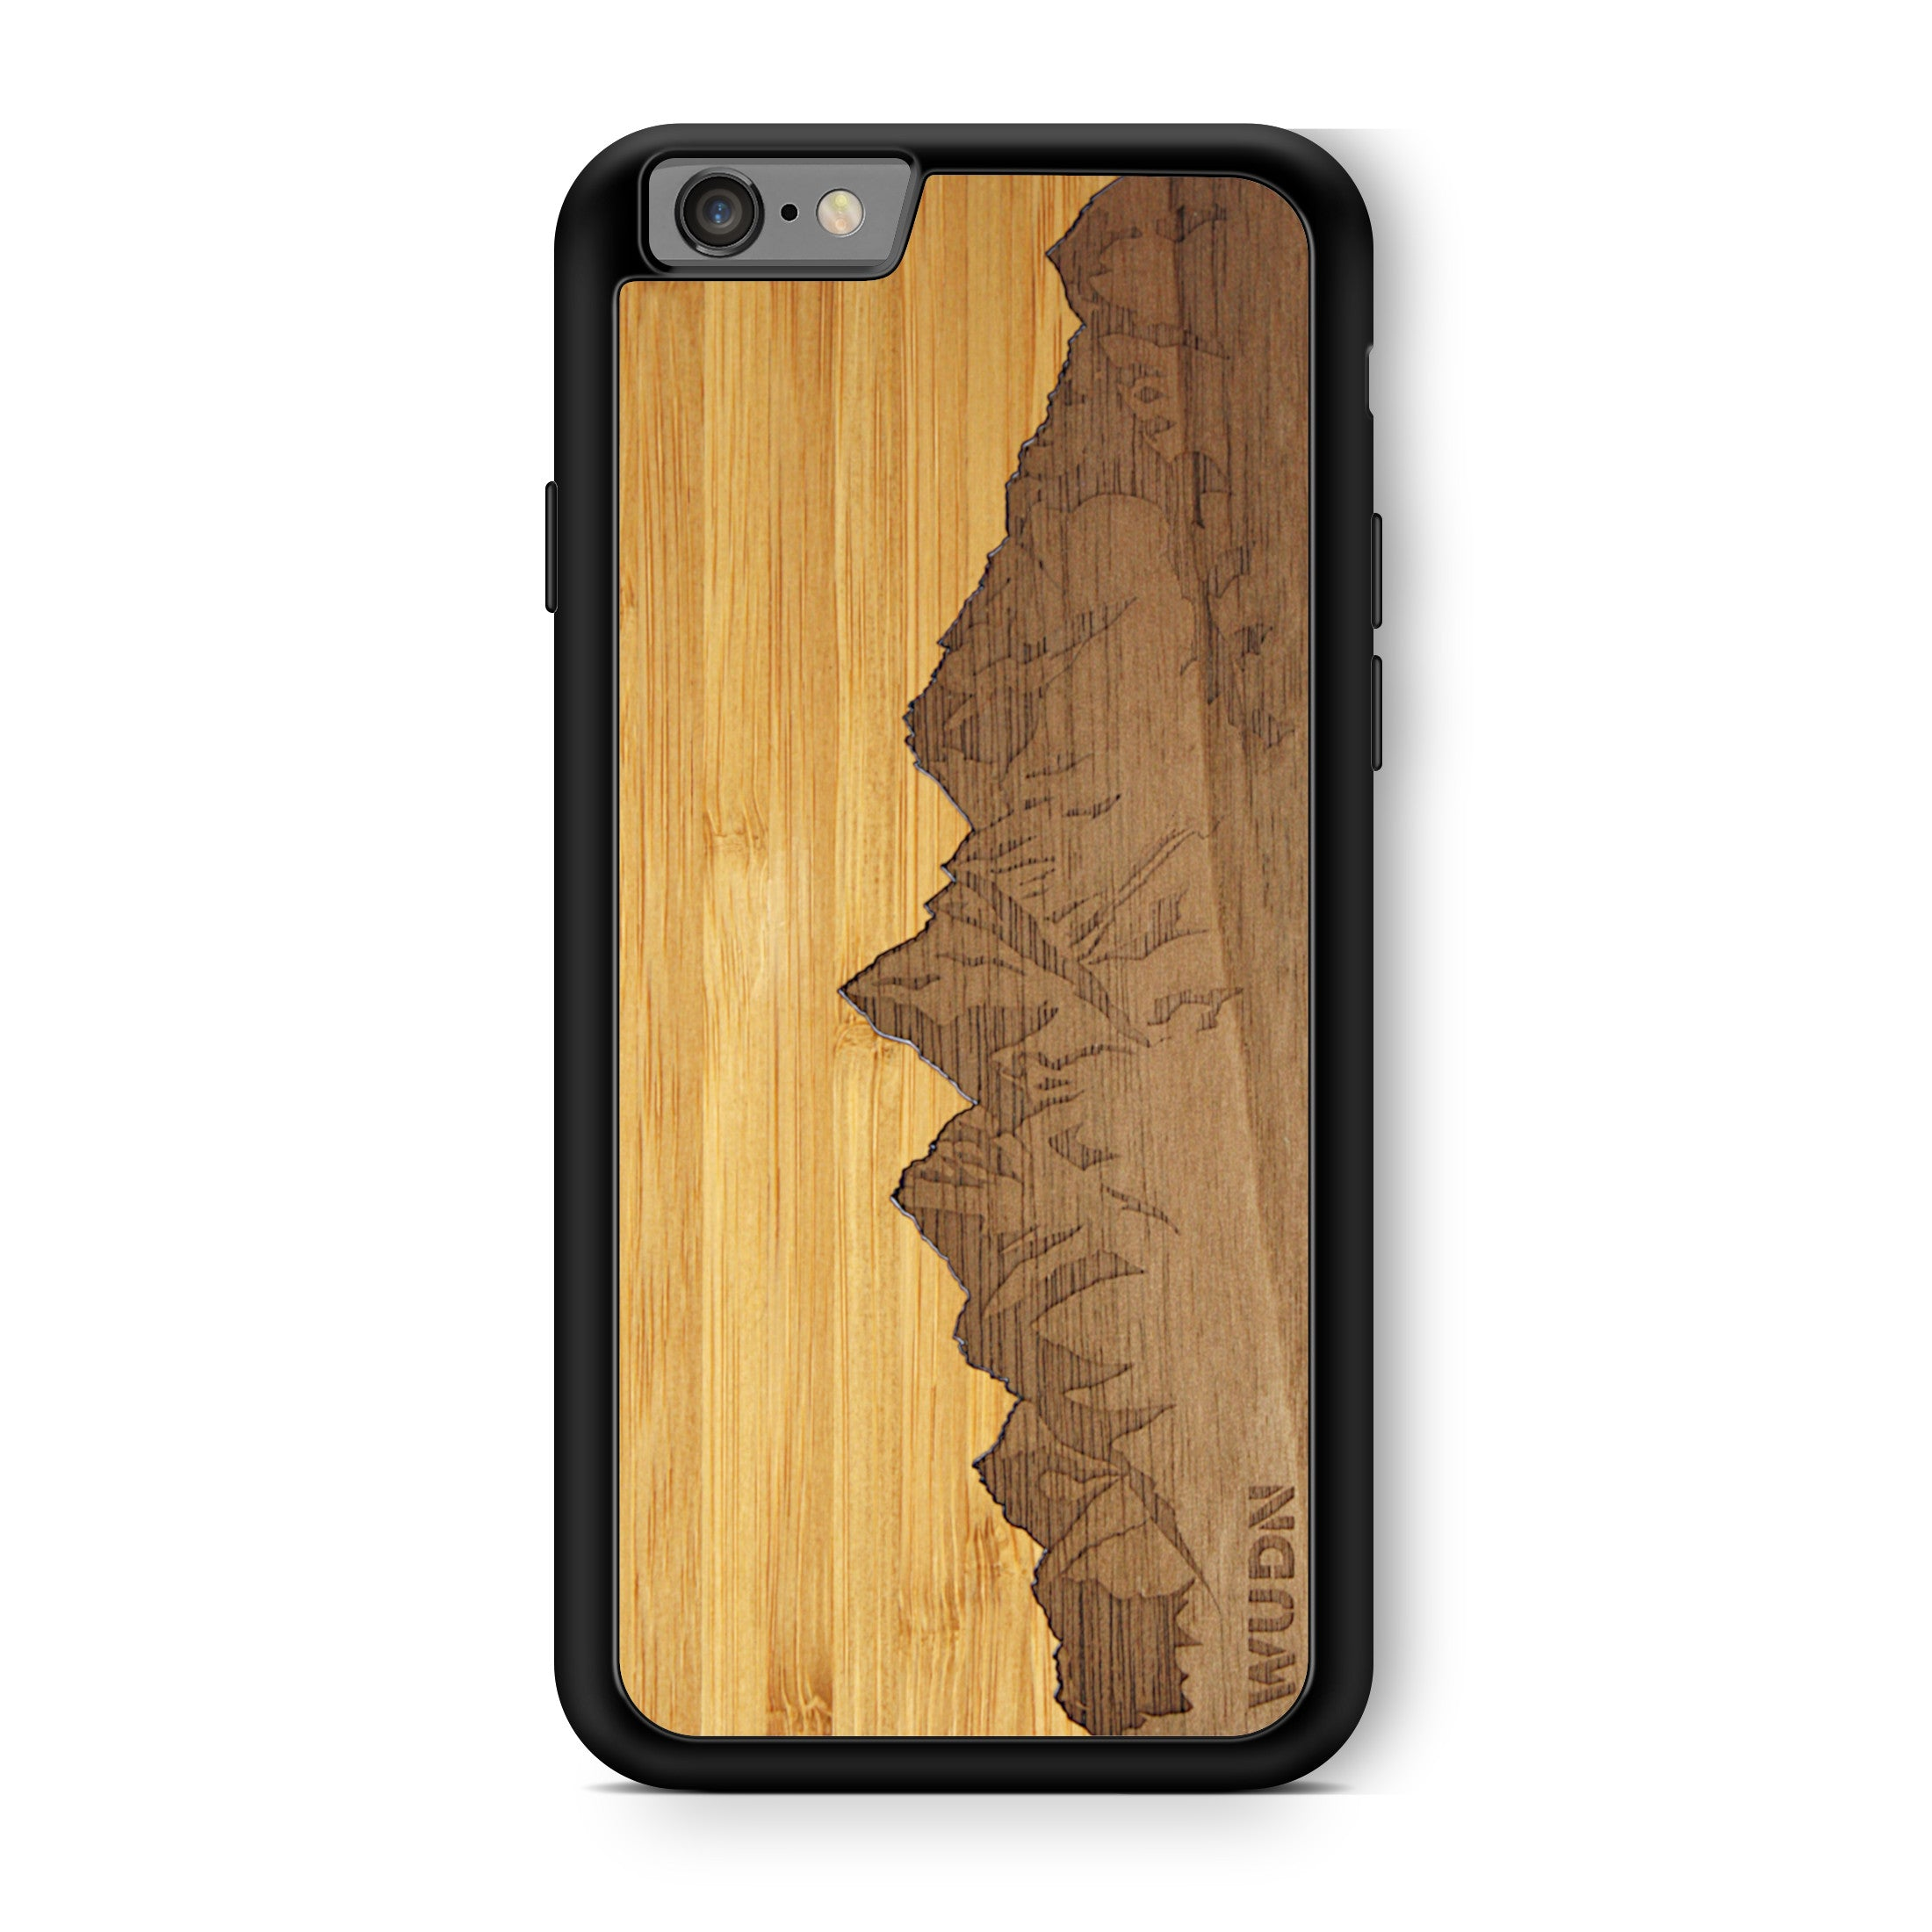 Slim Wooden Phone Case | Sawtooth Mountains Traveler, Cases by WUDN for iPhone 6 Plus / 6s Plus